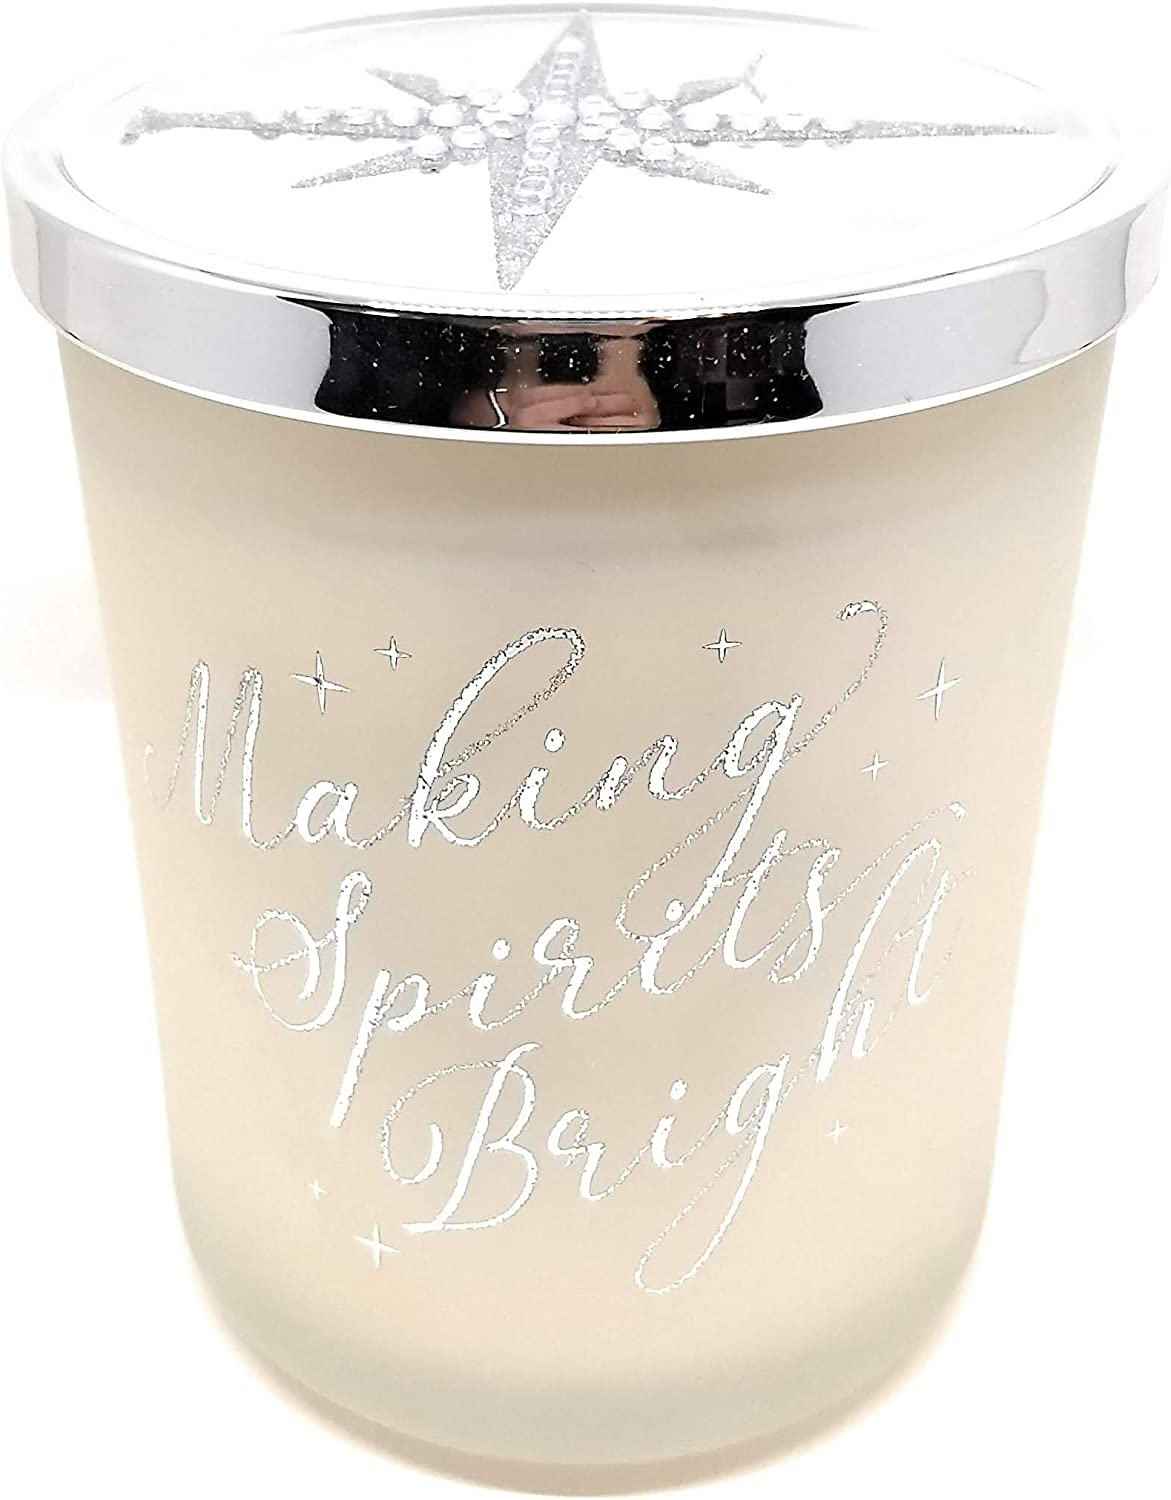 DW Home Christmas Holiday Candles - Limited Edition Star Lid 15 Ounce Large Candles with Christmas Song Titles (Making Spirits Bright)